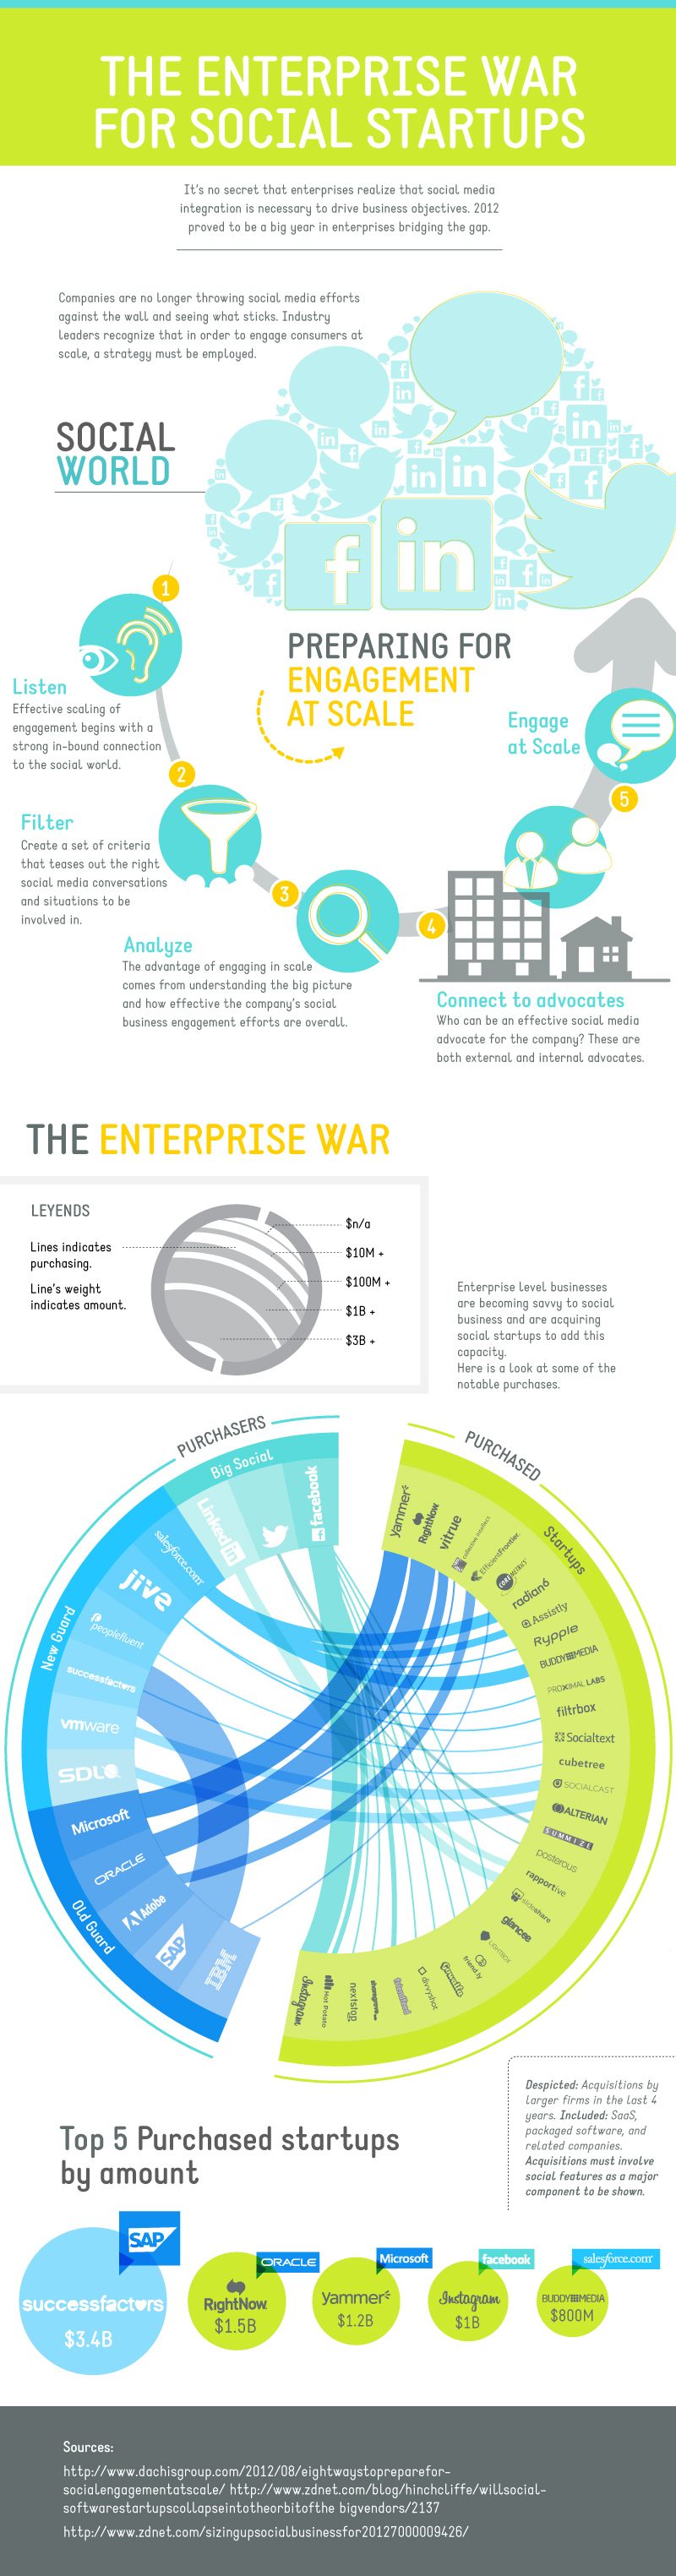 the Enterprise War For Social Startups